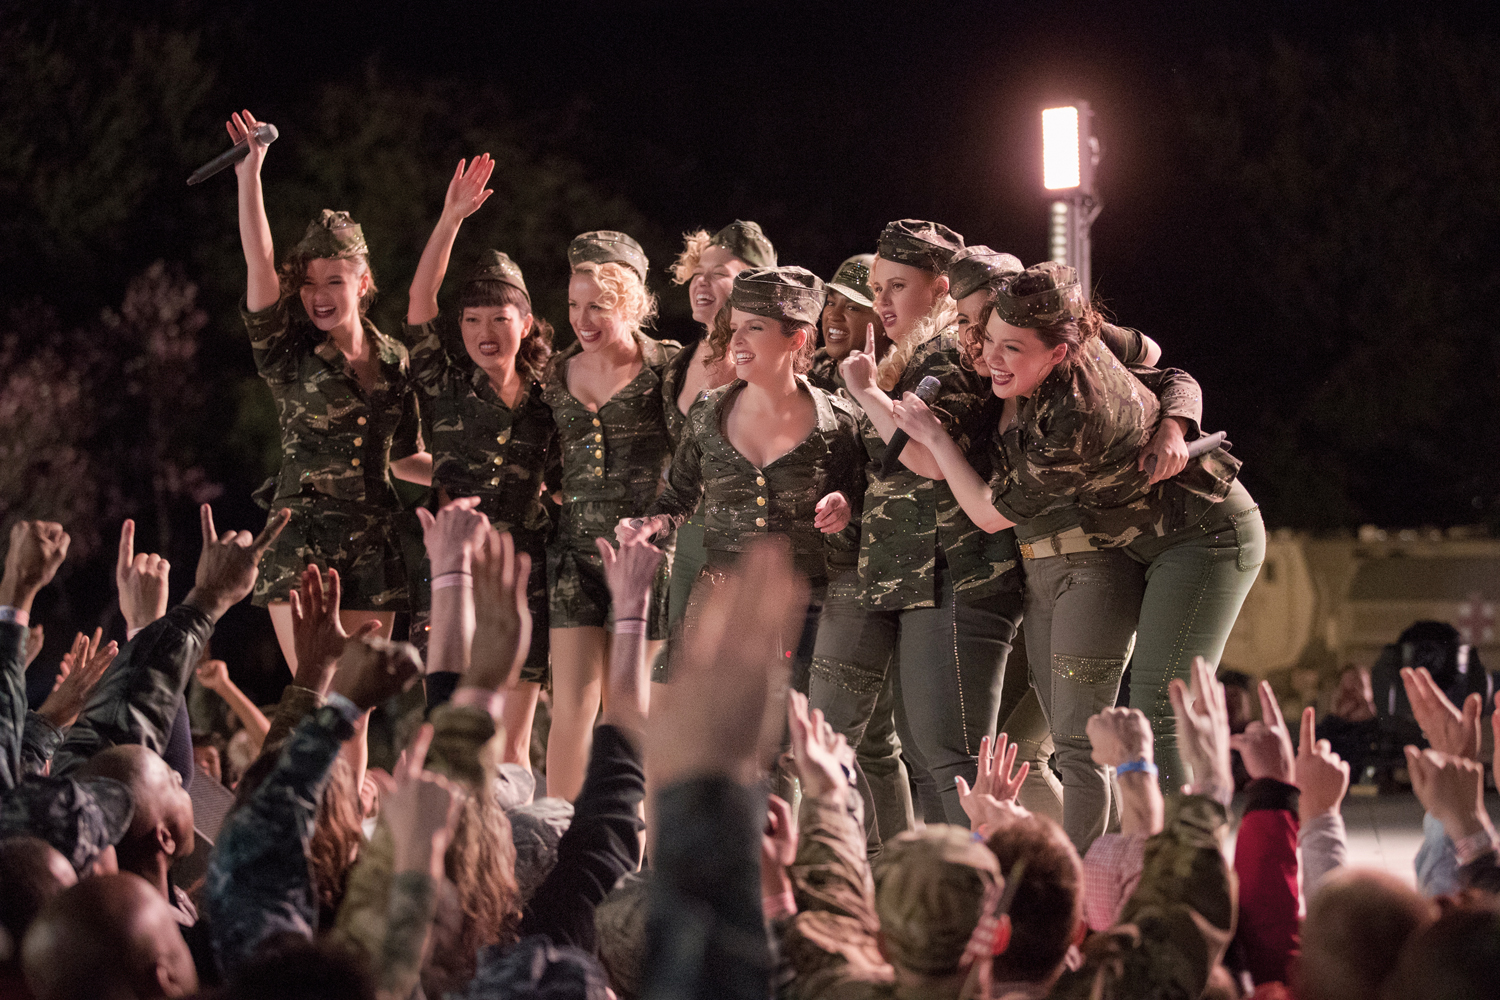 'Pitch Perfect 3' Trailer: Bellas Reunite to Compete Against Real Musicians